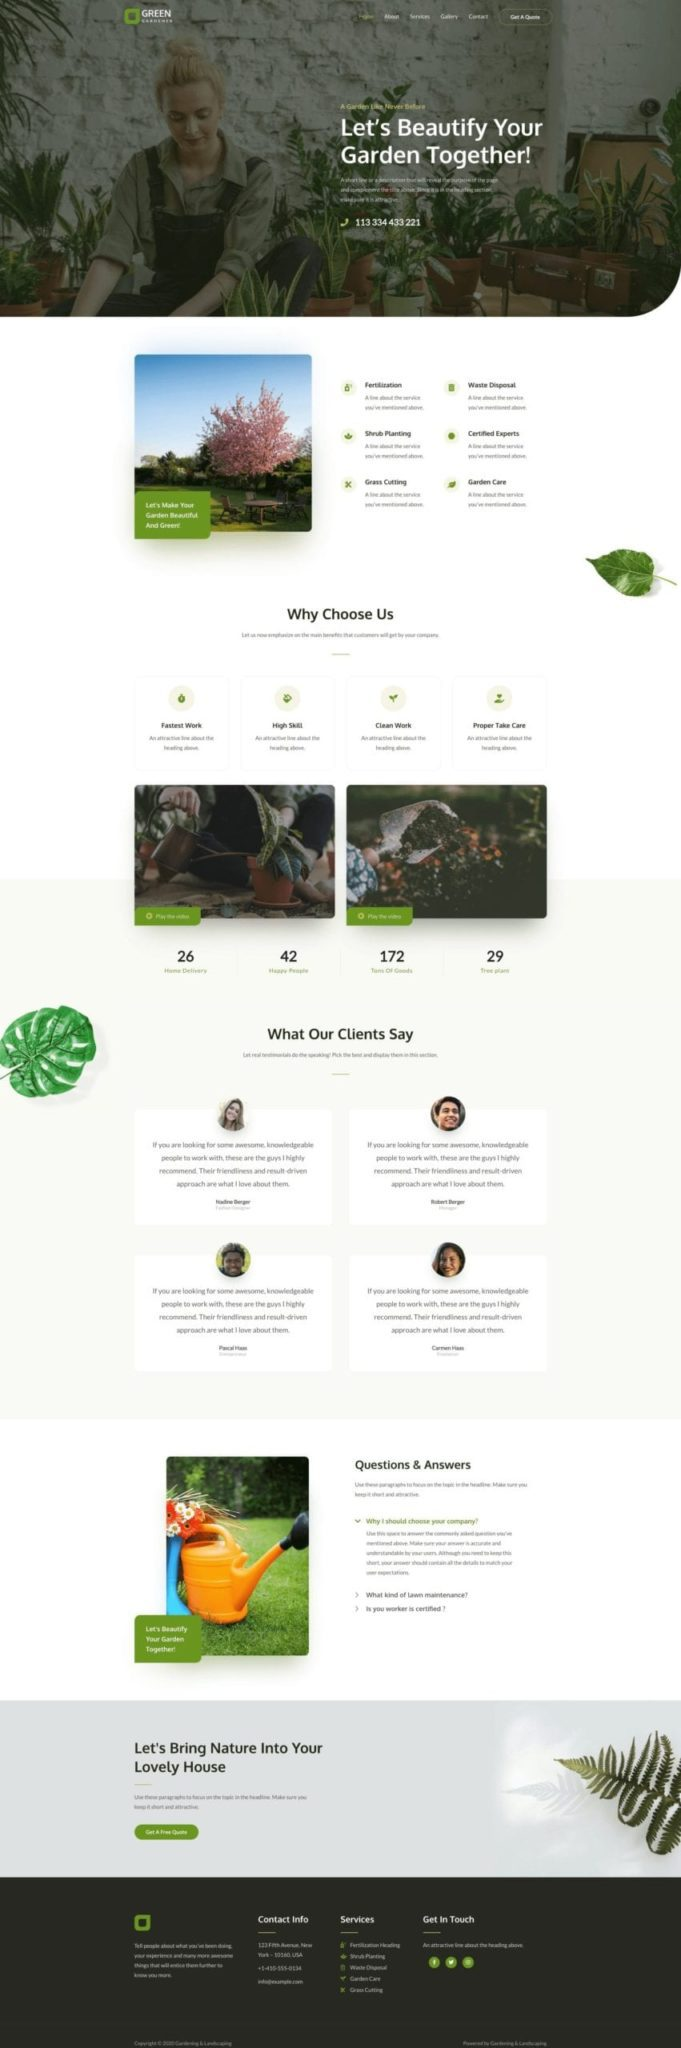 Preview Landscaping Site